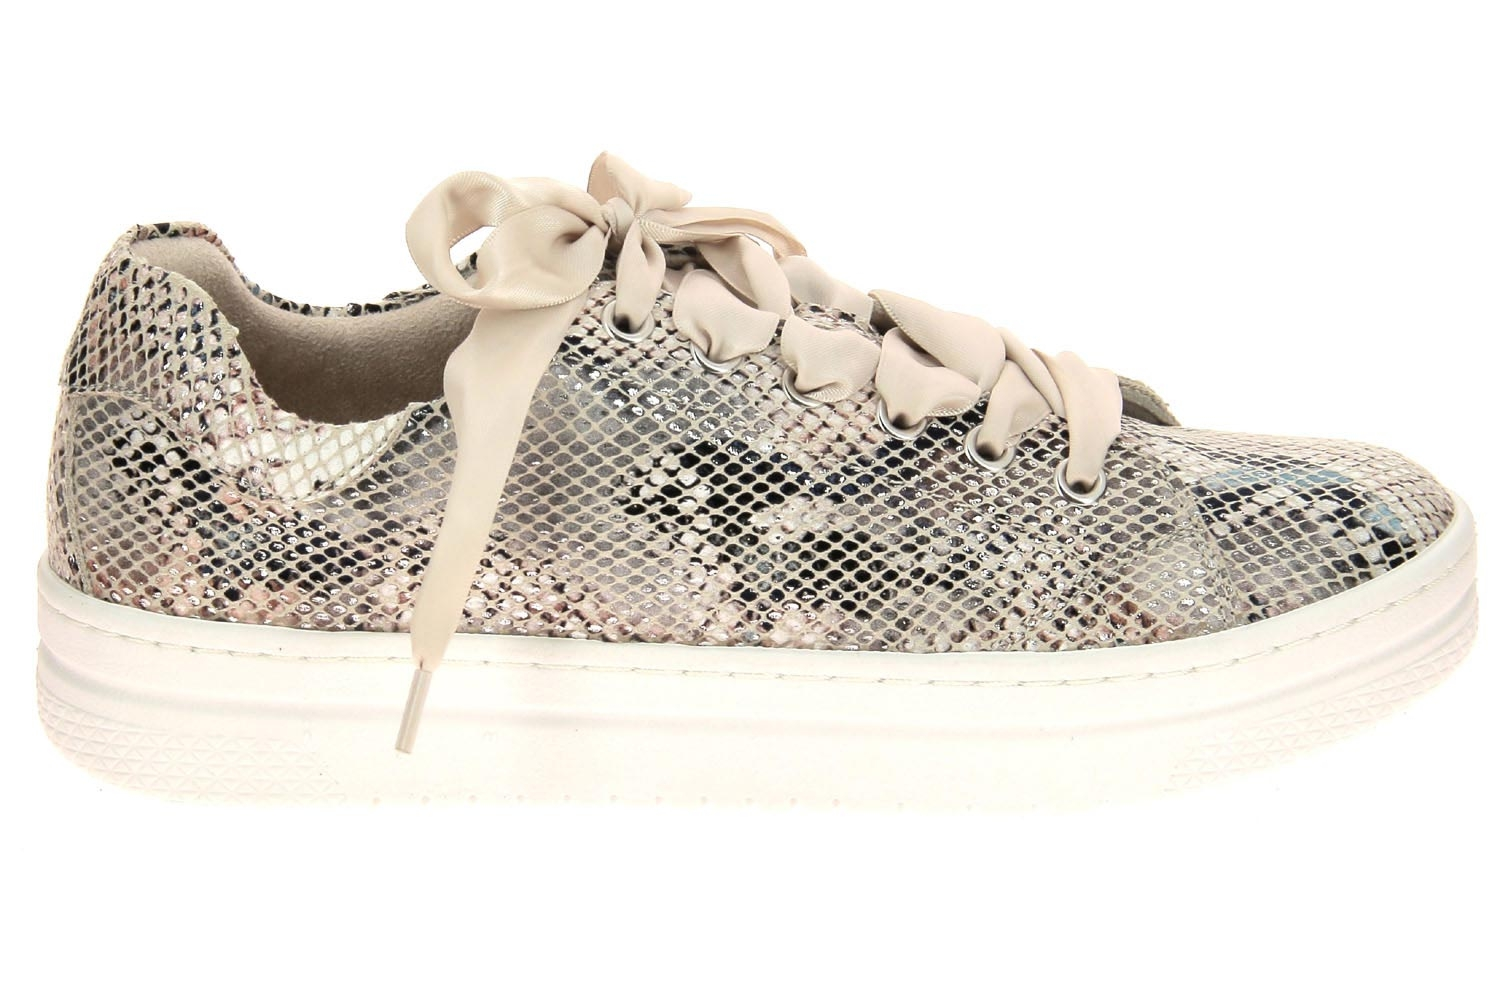 Chaussures Plates Marco Tozzi Beige 23761 466 Chaussures Femme Marco Tozzi